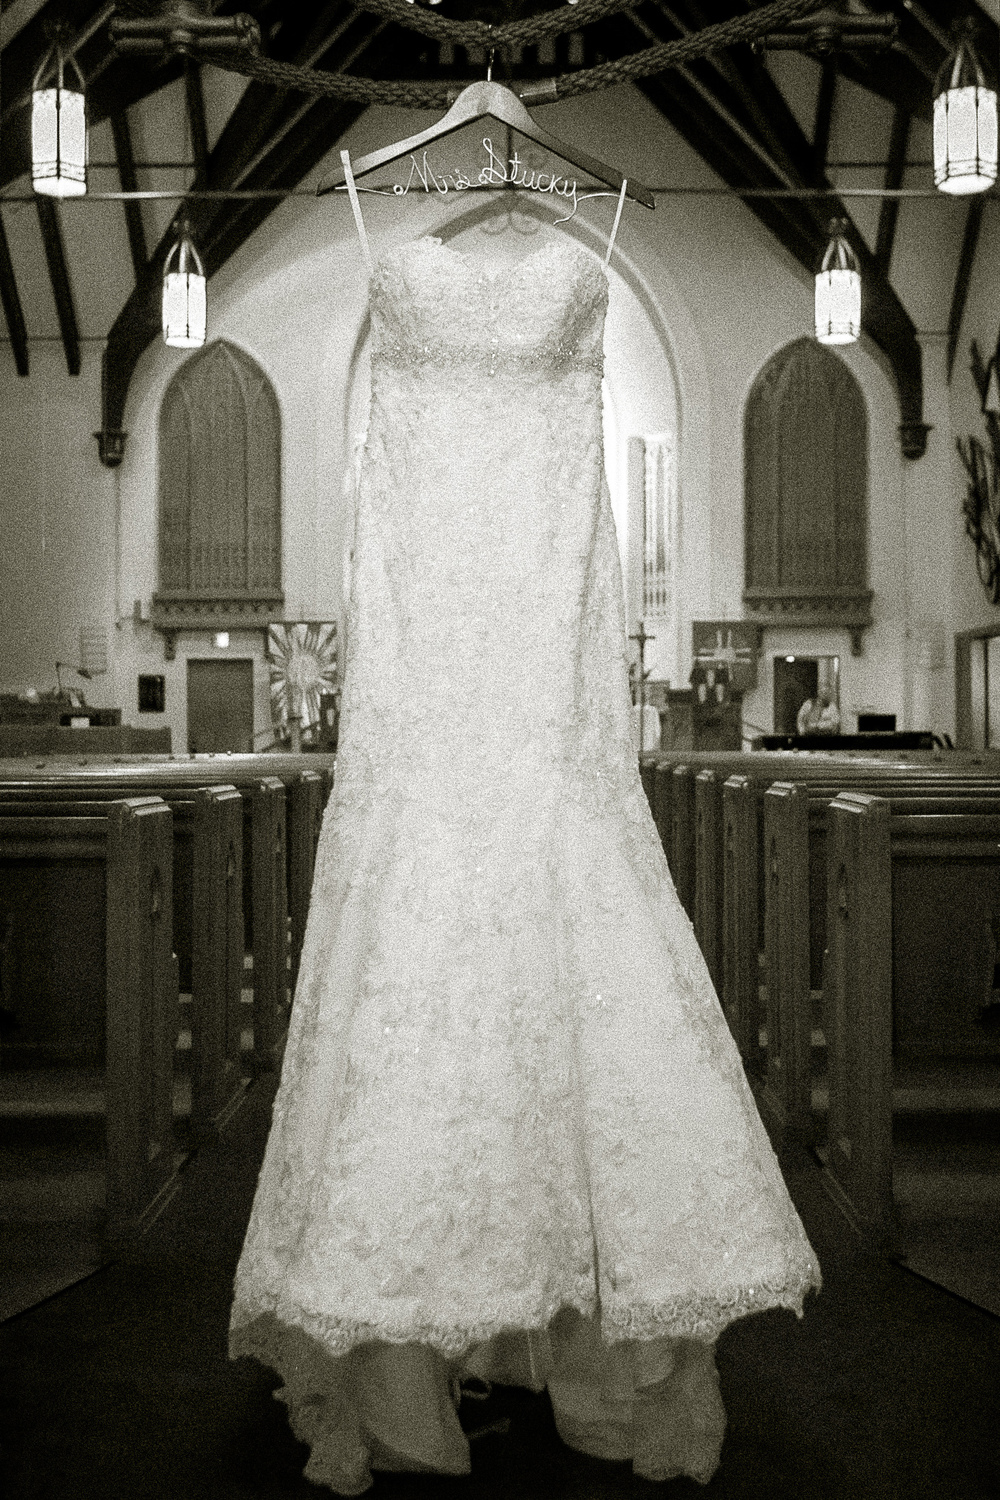 The wedding dress hanging at the entrance to the church sets the scene.